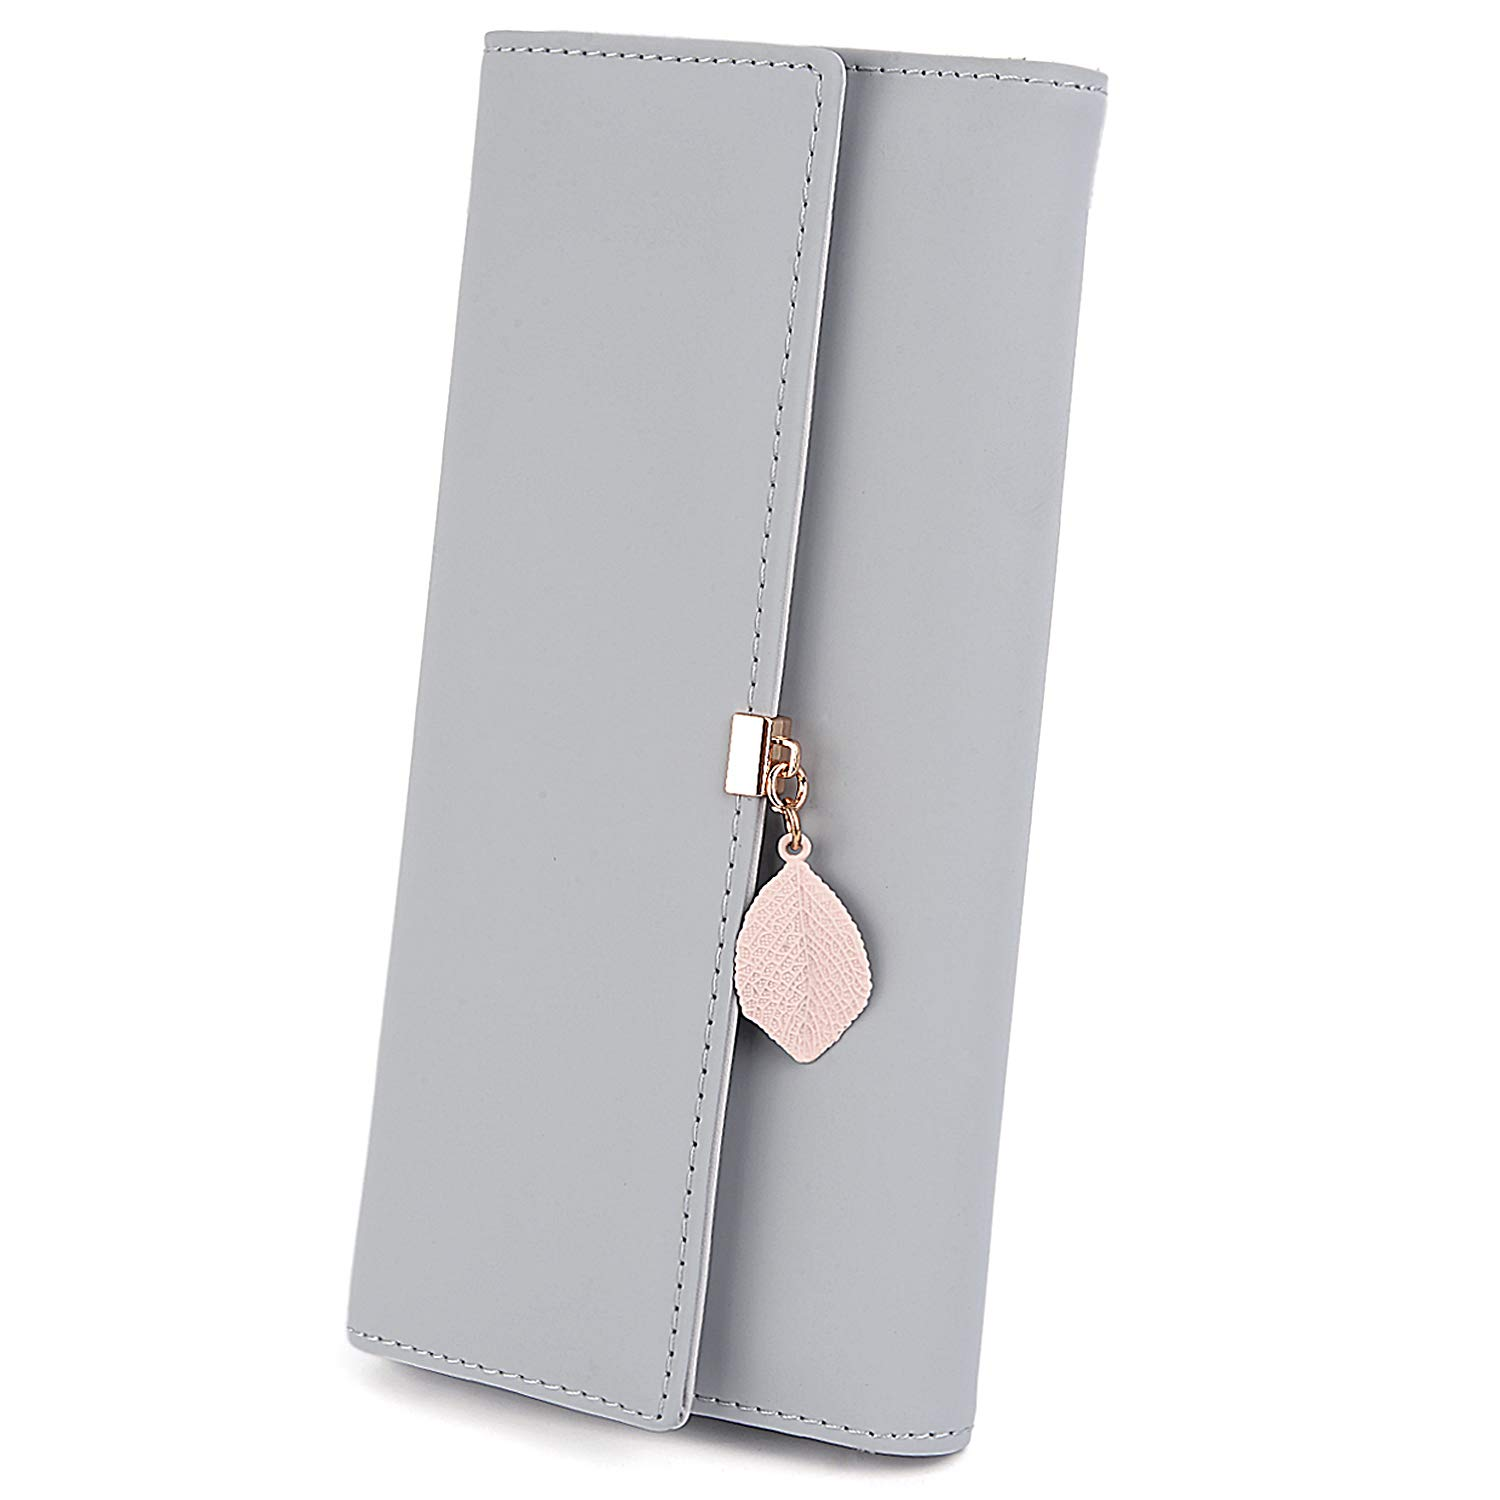 UTO Wallet for Women PU Leather Leaf Pendant Card Holder Phone Checkbook Organizer Zipper Coin Purse